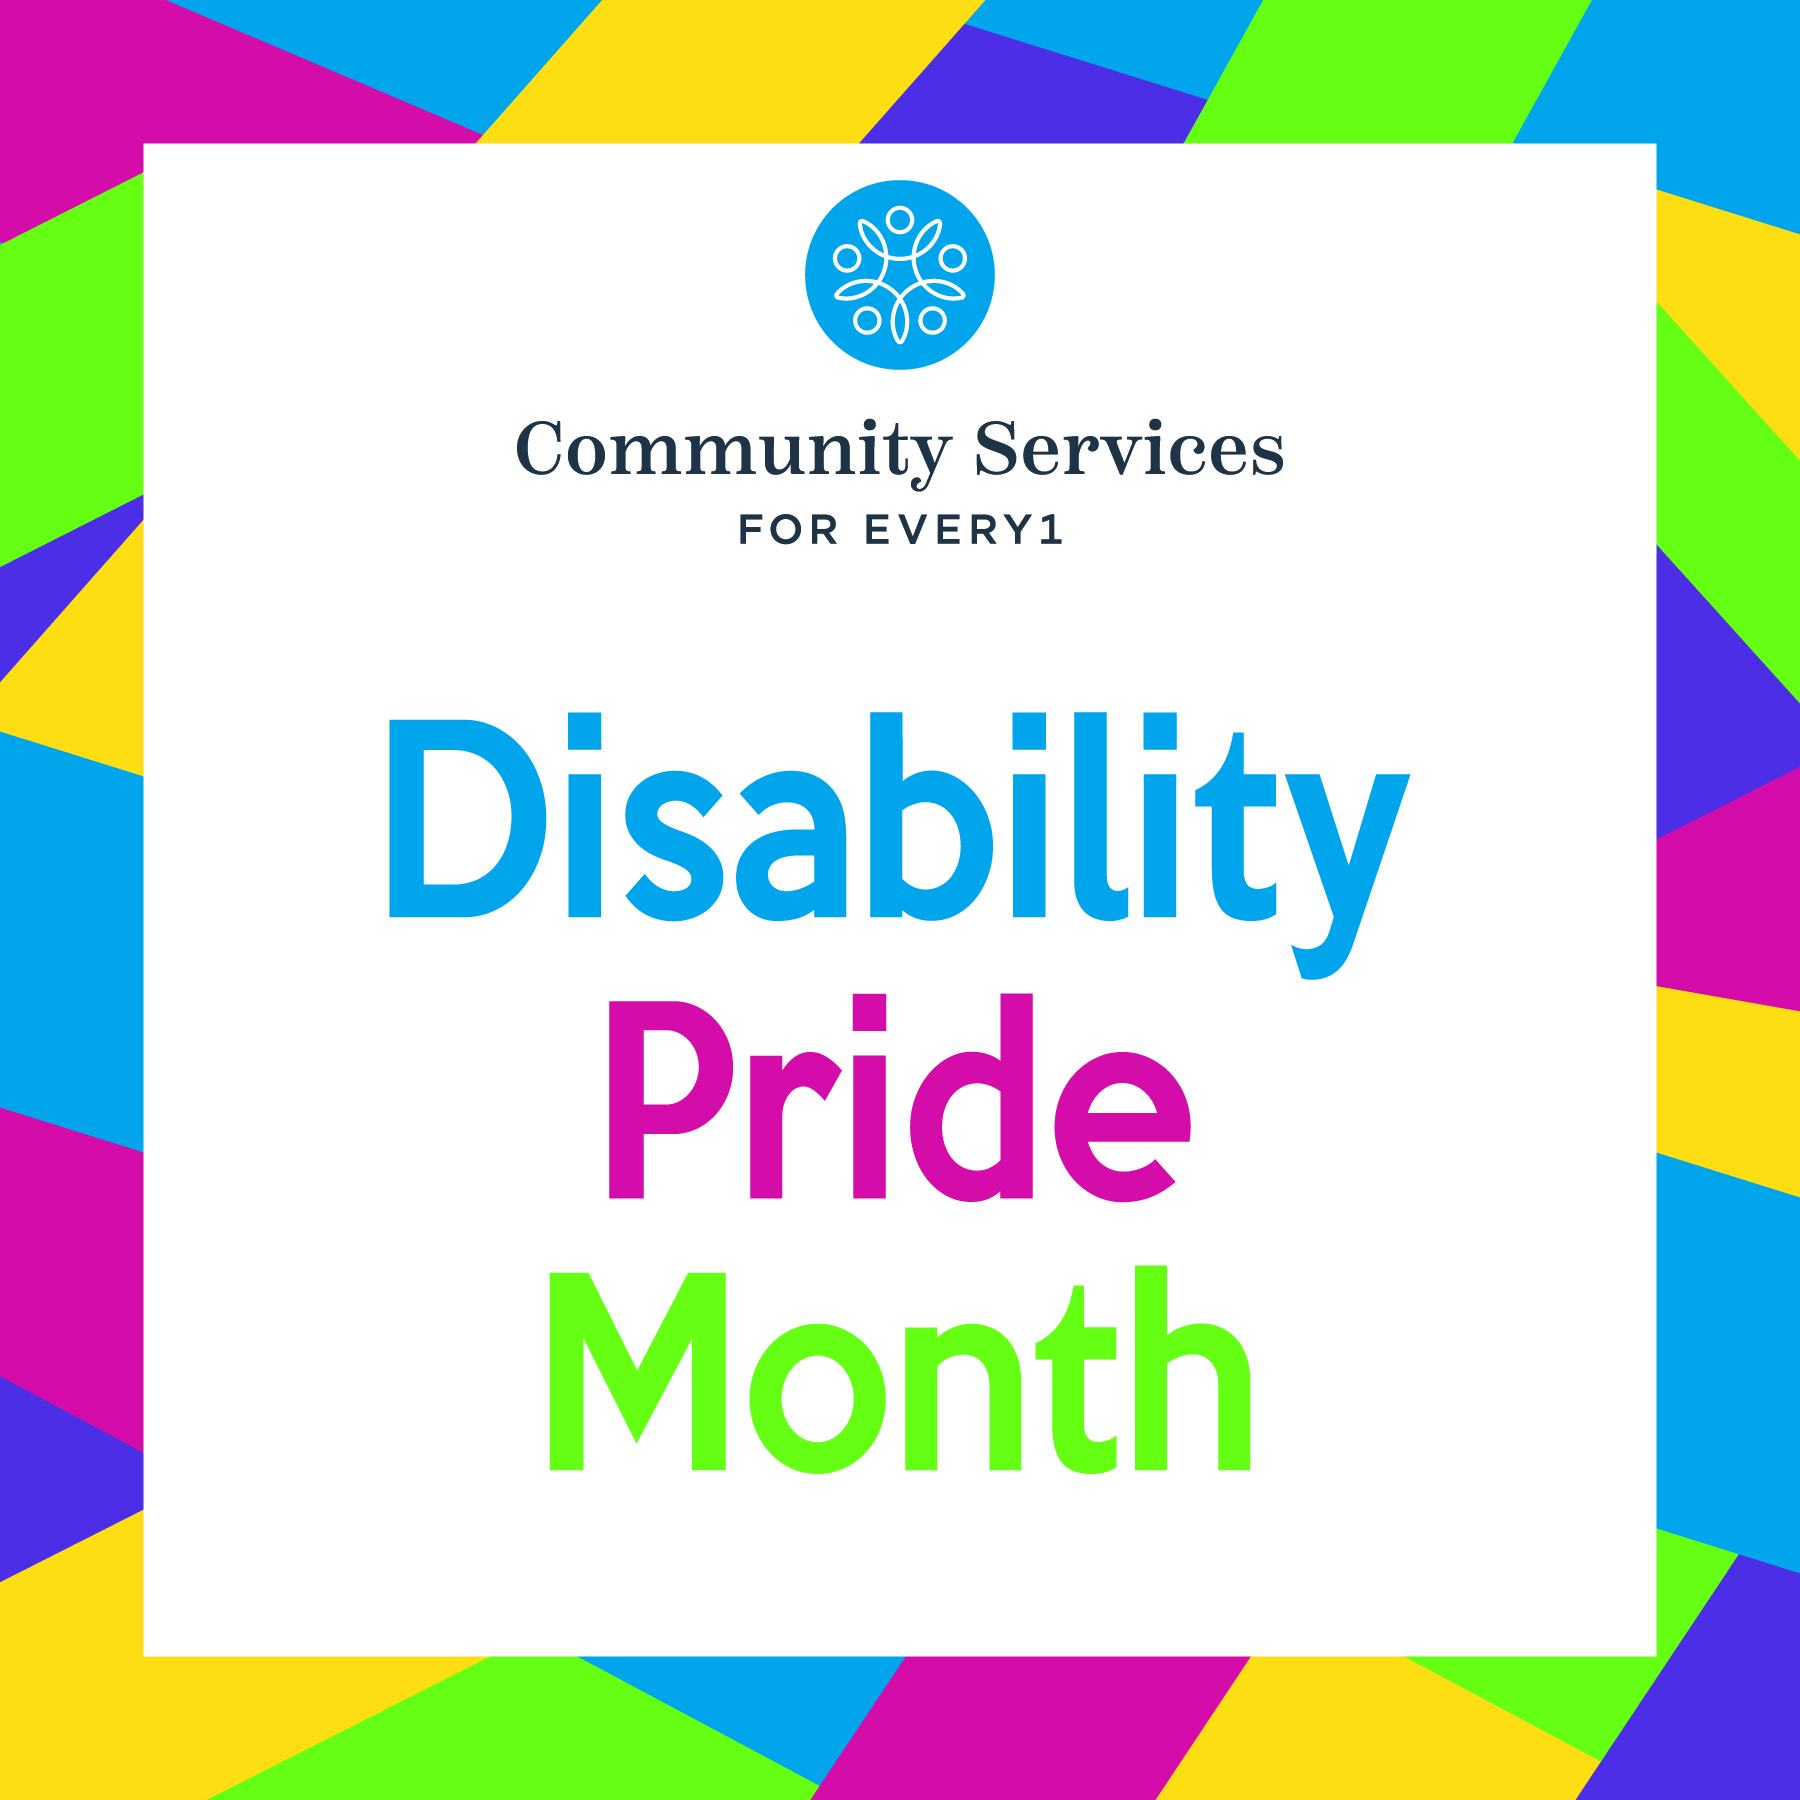 Disability Pride Month graphic